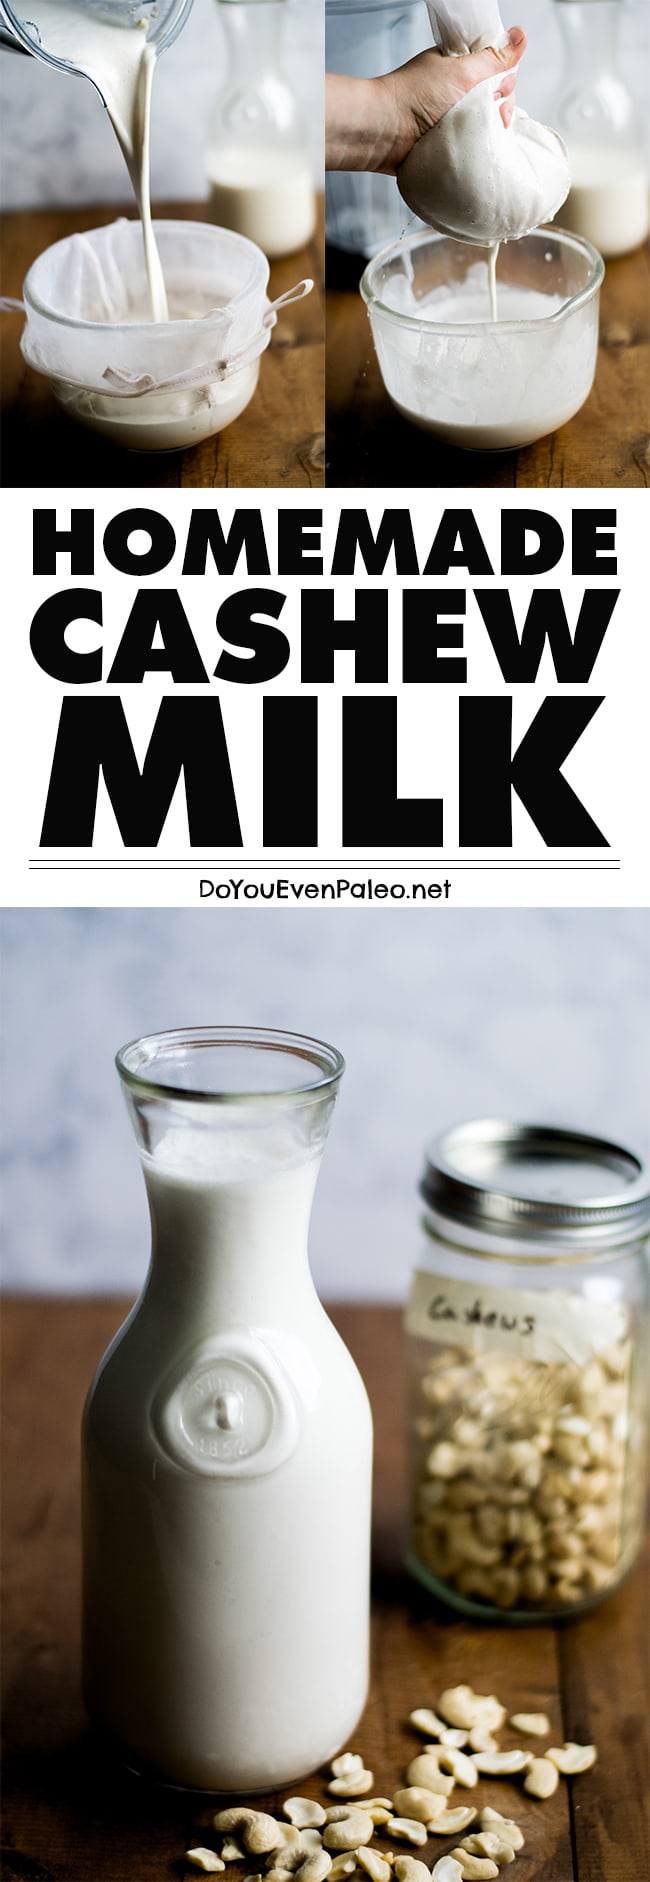 Make your own cashew milk! It's great as coffee creamer, hot chocolate, or just drinking straight. Paleo, vegan, gluten free. | DoYouEvenPaleo.net